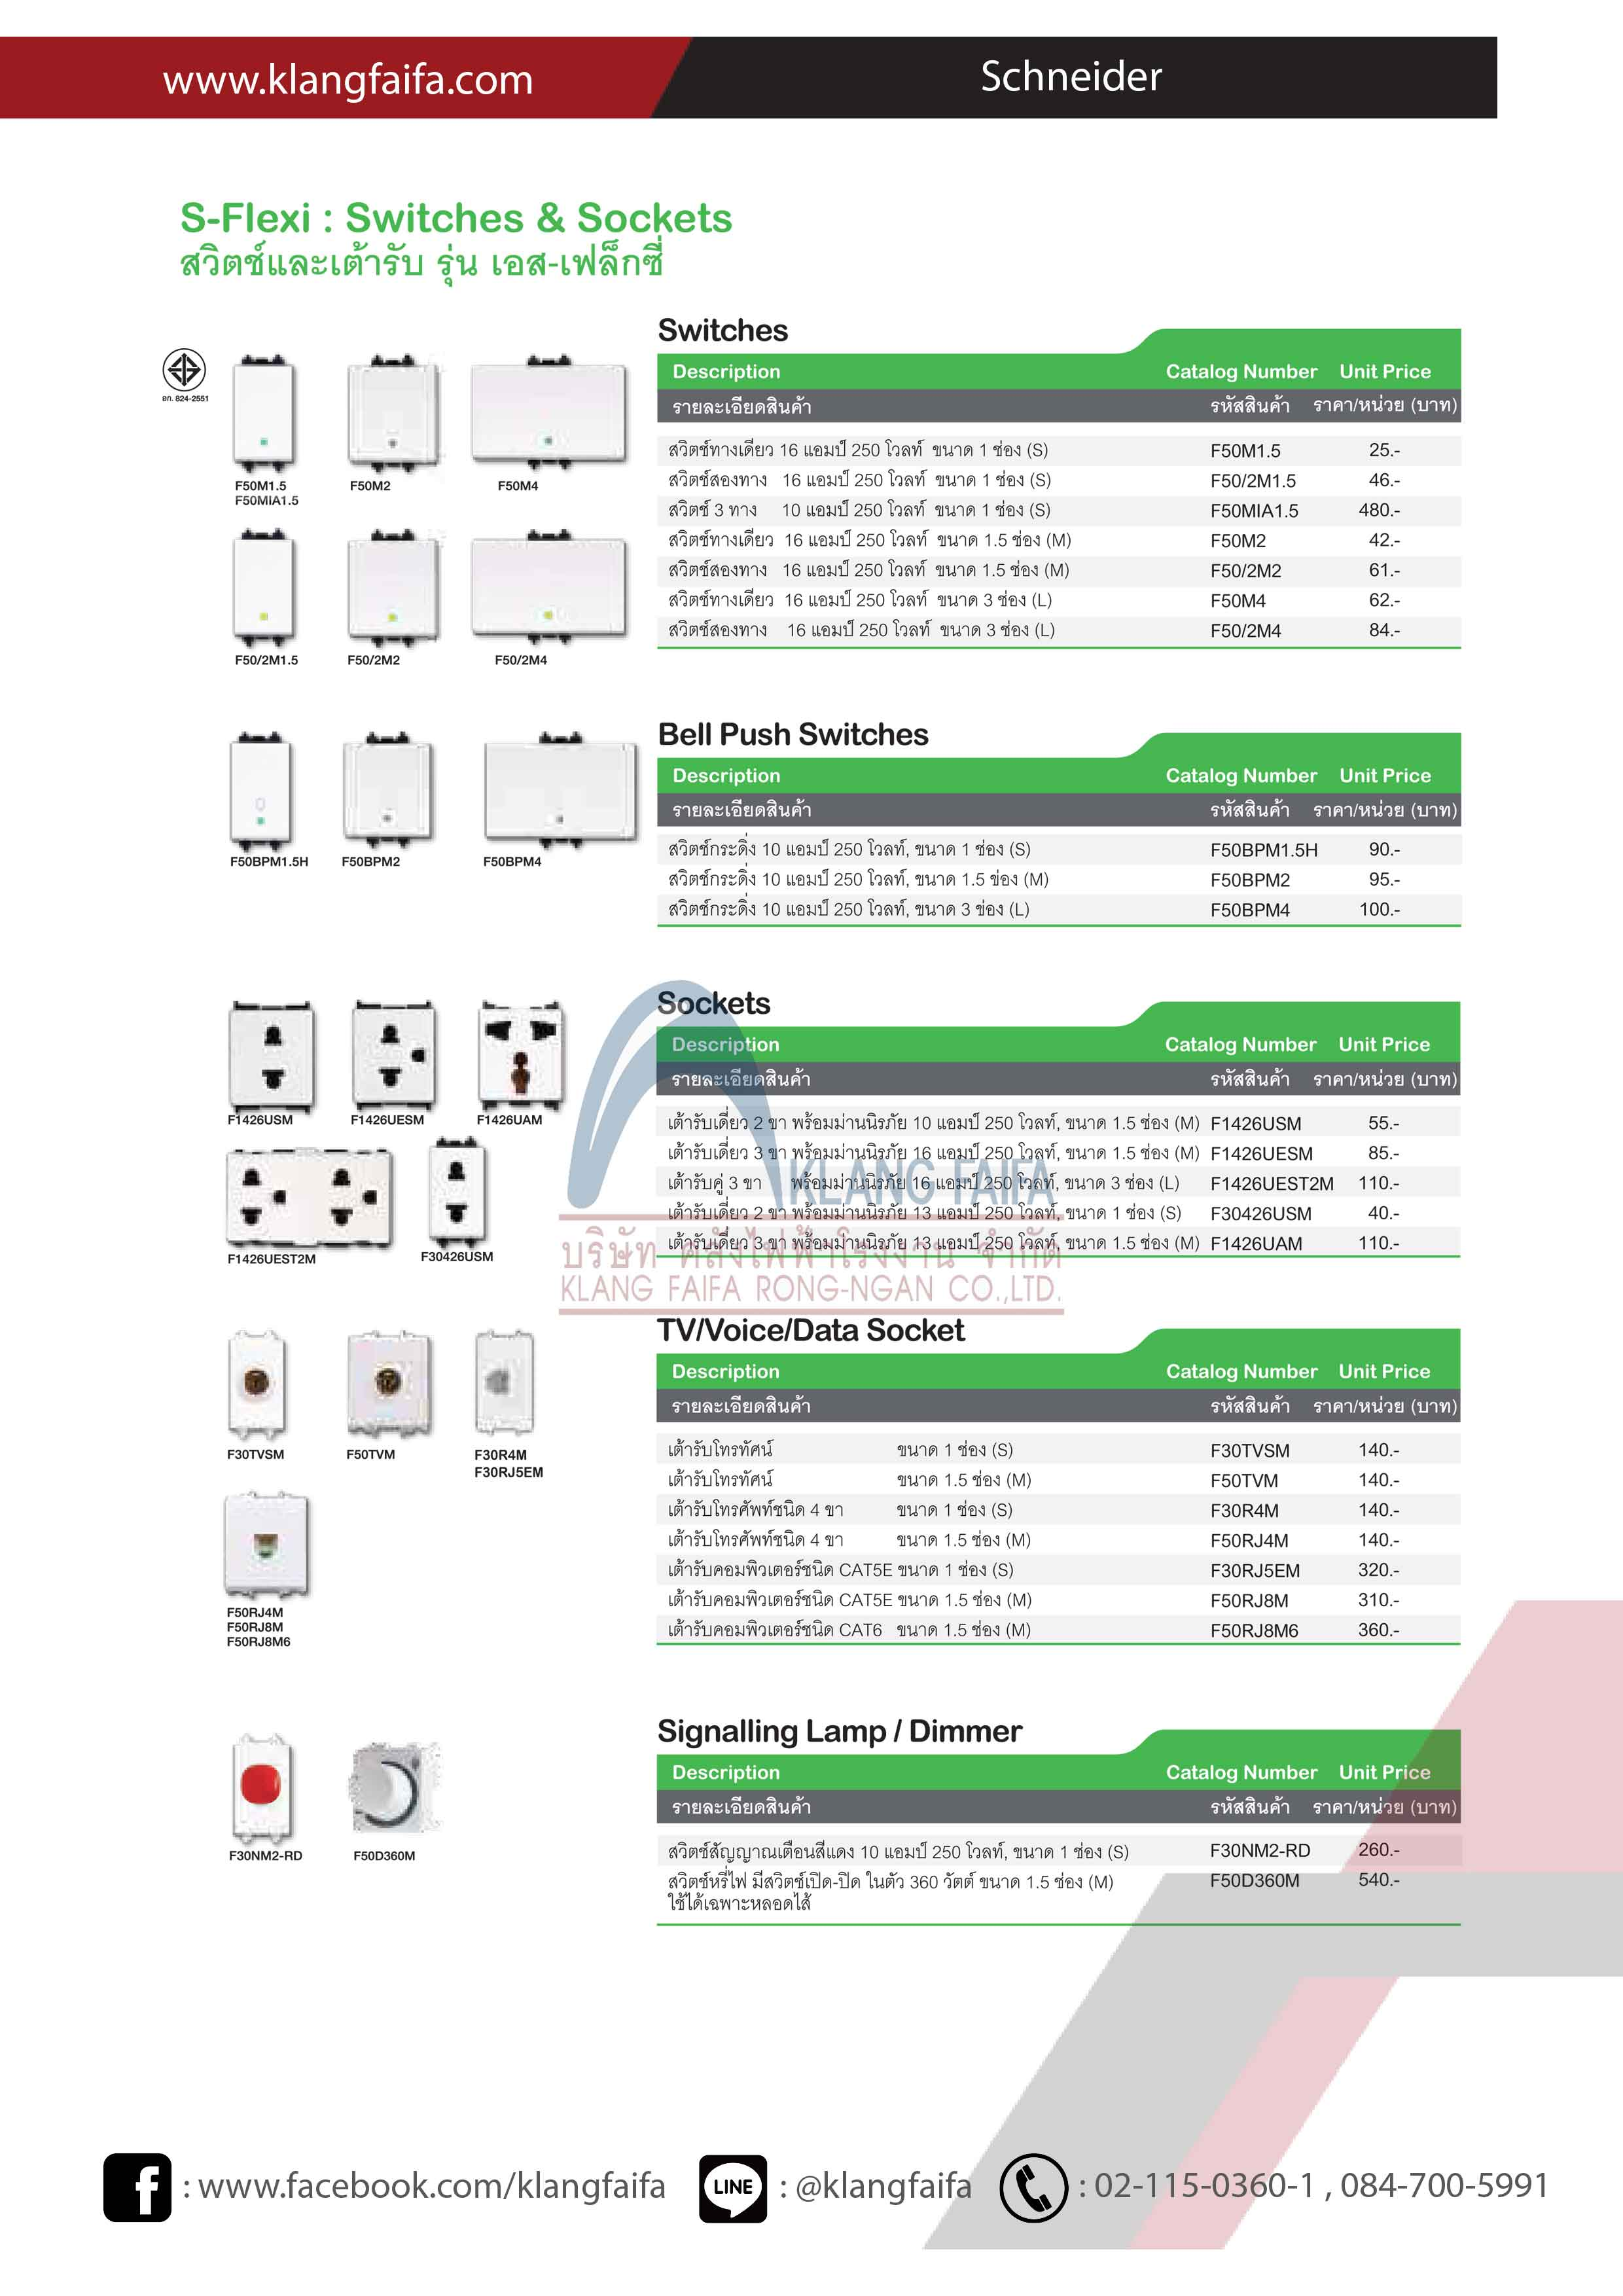 S-Flexi, Switches, Sockets, Schneider, TV_Socket, Signallinglamp, Dimmer, หน้ากากเต้ารับ, Flush_Plate, FloorSocket, ฝาครอบกันน้ำ, easyclip, Catalog_Schneider_2019